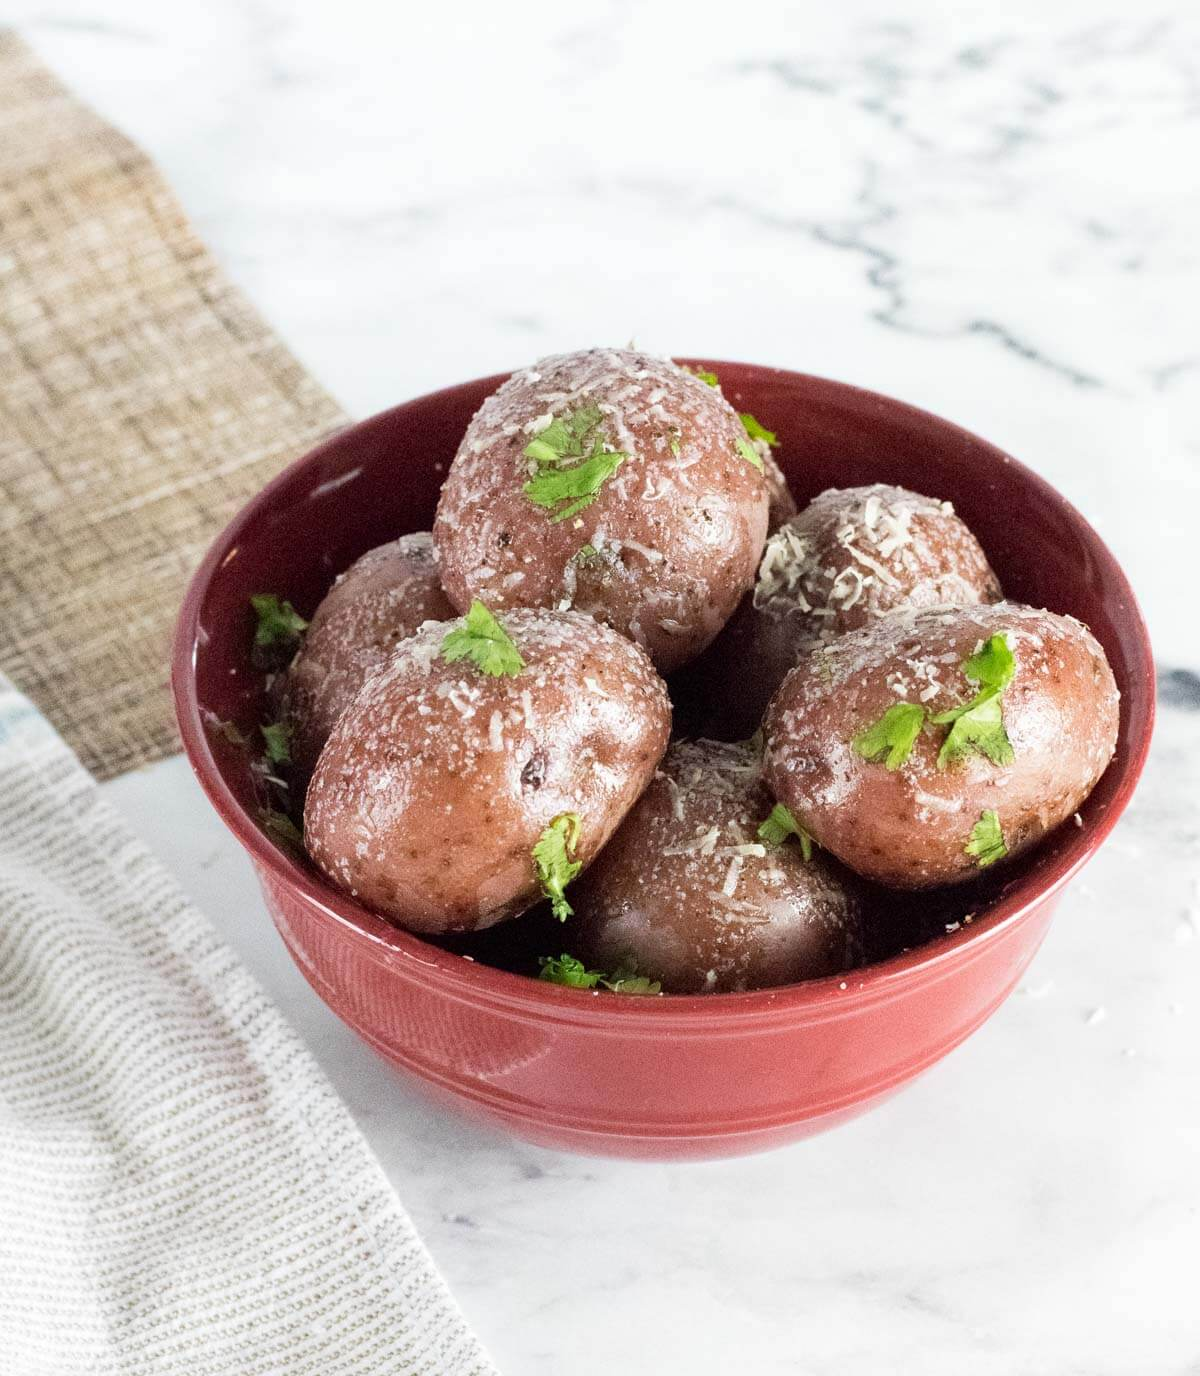 Red potatoes with butter and Parmesan in a bowl with white background.